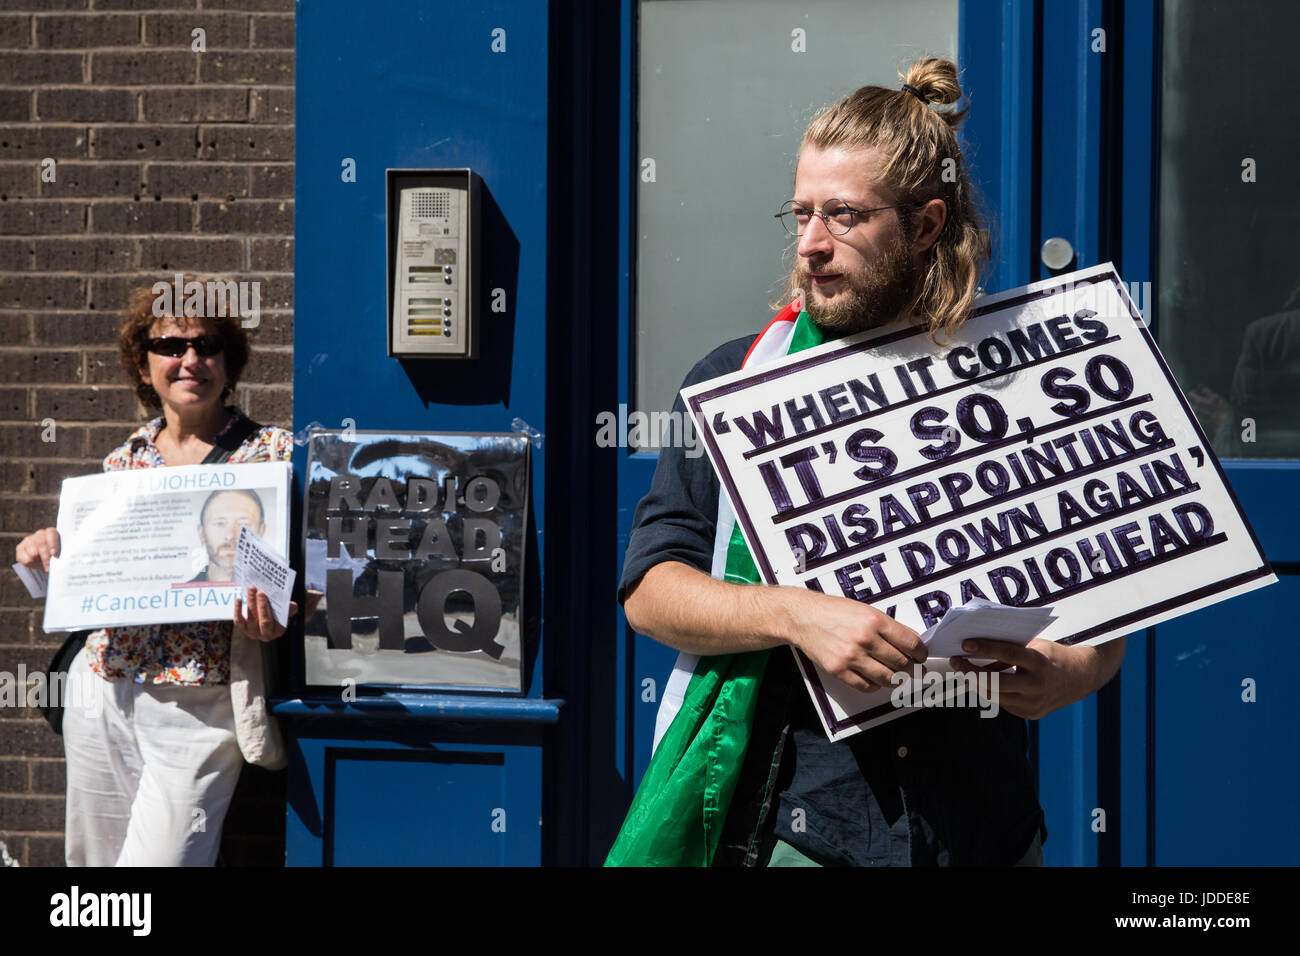 London, UK. 19th June, 2017. Activists from London Palestine Action protest outside the offices of Radiohead in - Stock Image